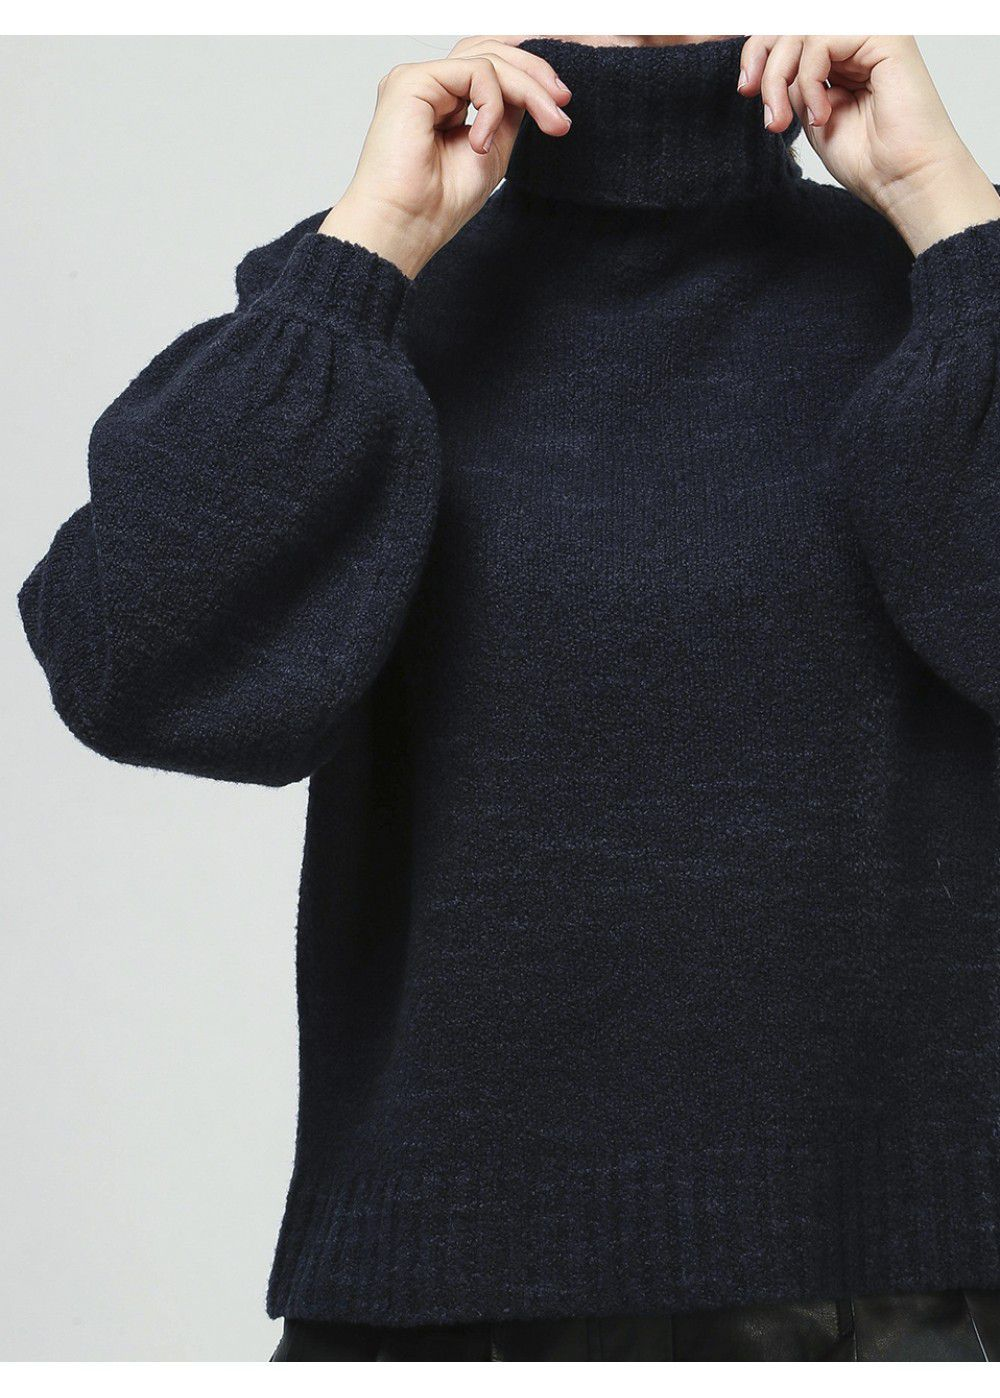 A.L.C. Brinkley Sweater in Navy